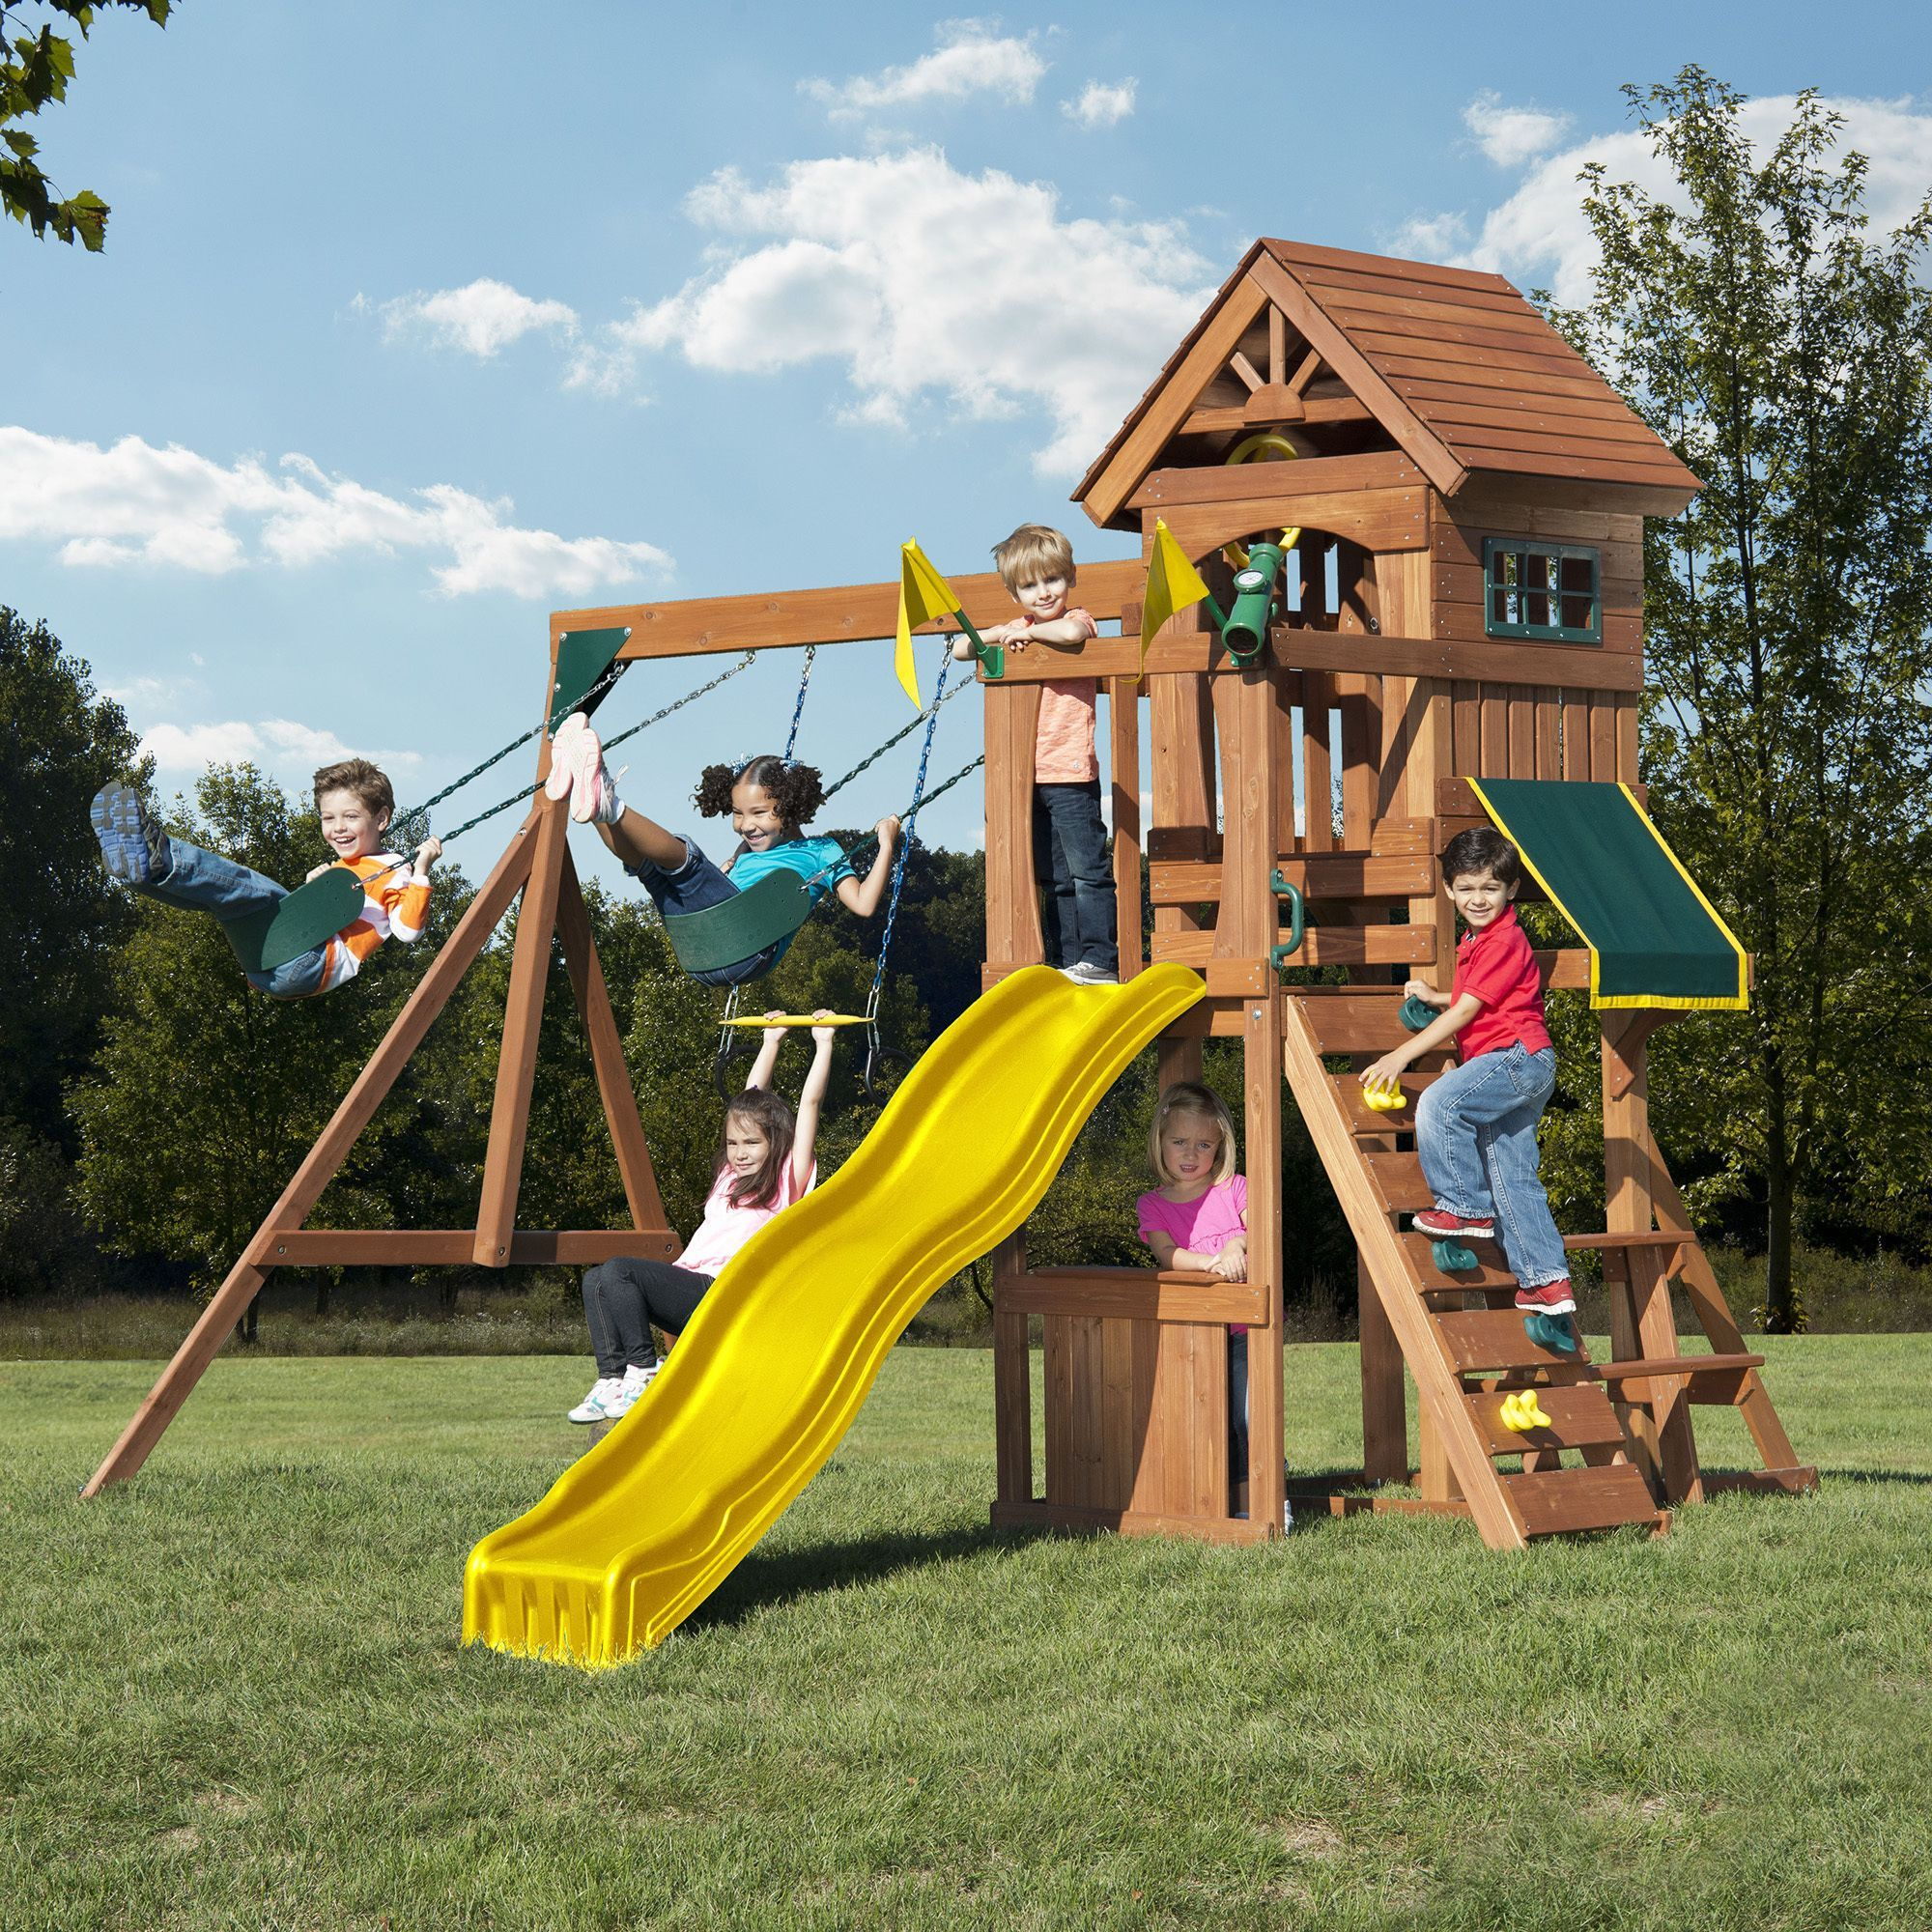 wood swing somerset product playsets club adventure with clubhouse montpelier imageservice recipeid wholesale backyard discovery full imageid profileid bjs set